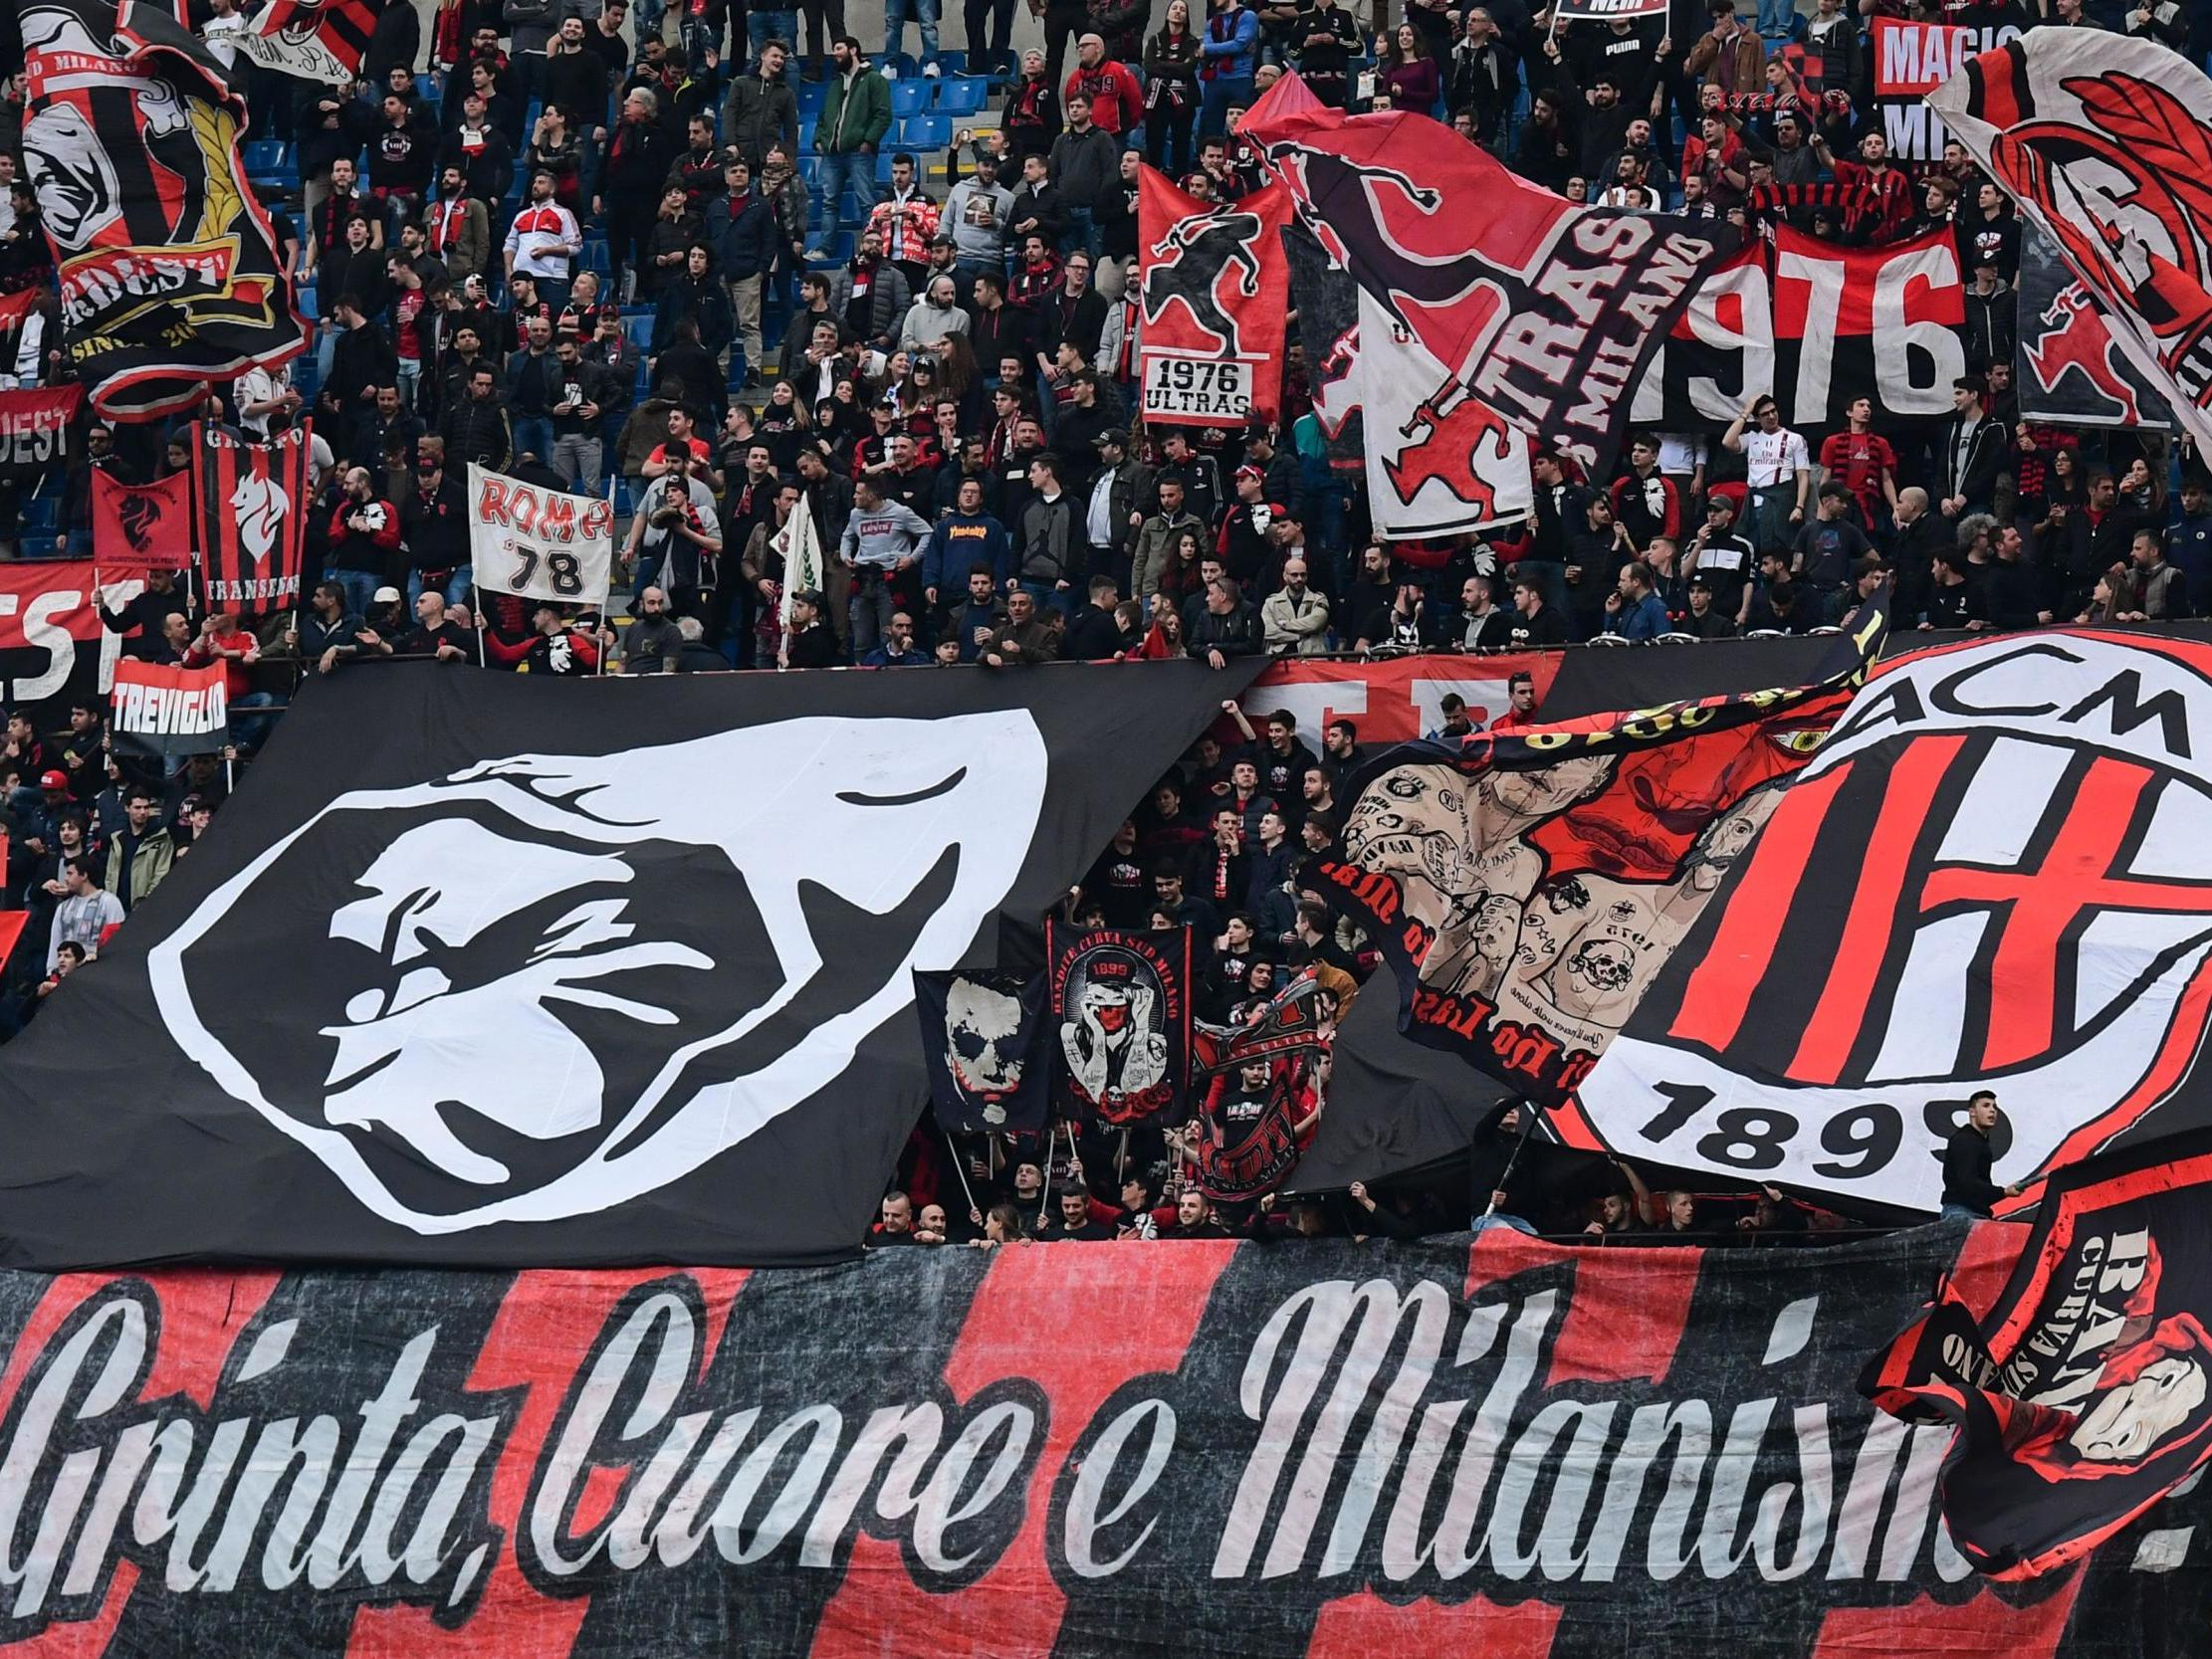 Resurgent AC Milan looking to the future with renewed optimism as they bid to honour their storied past